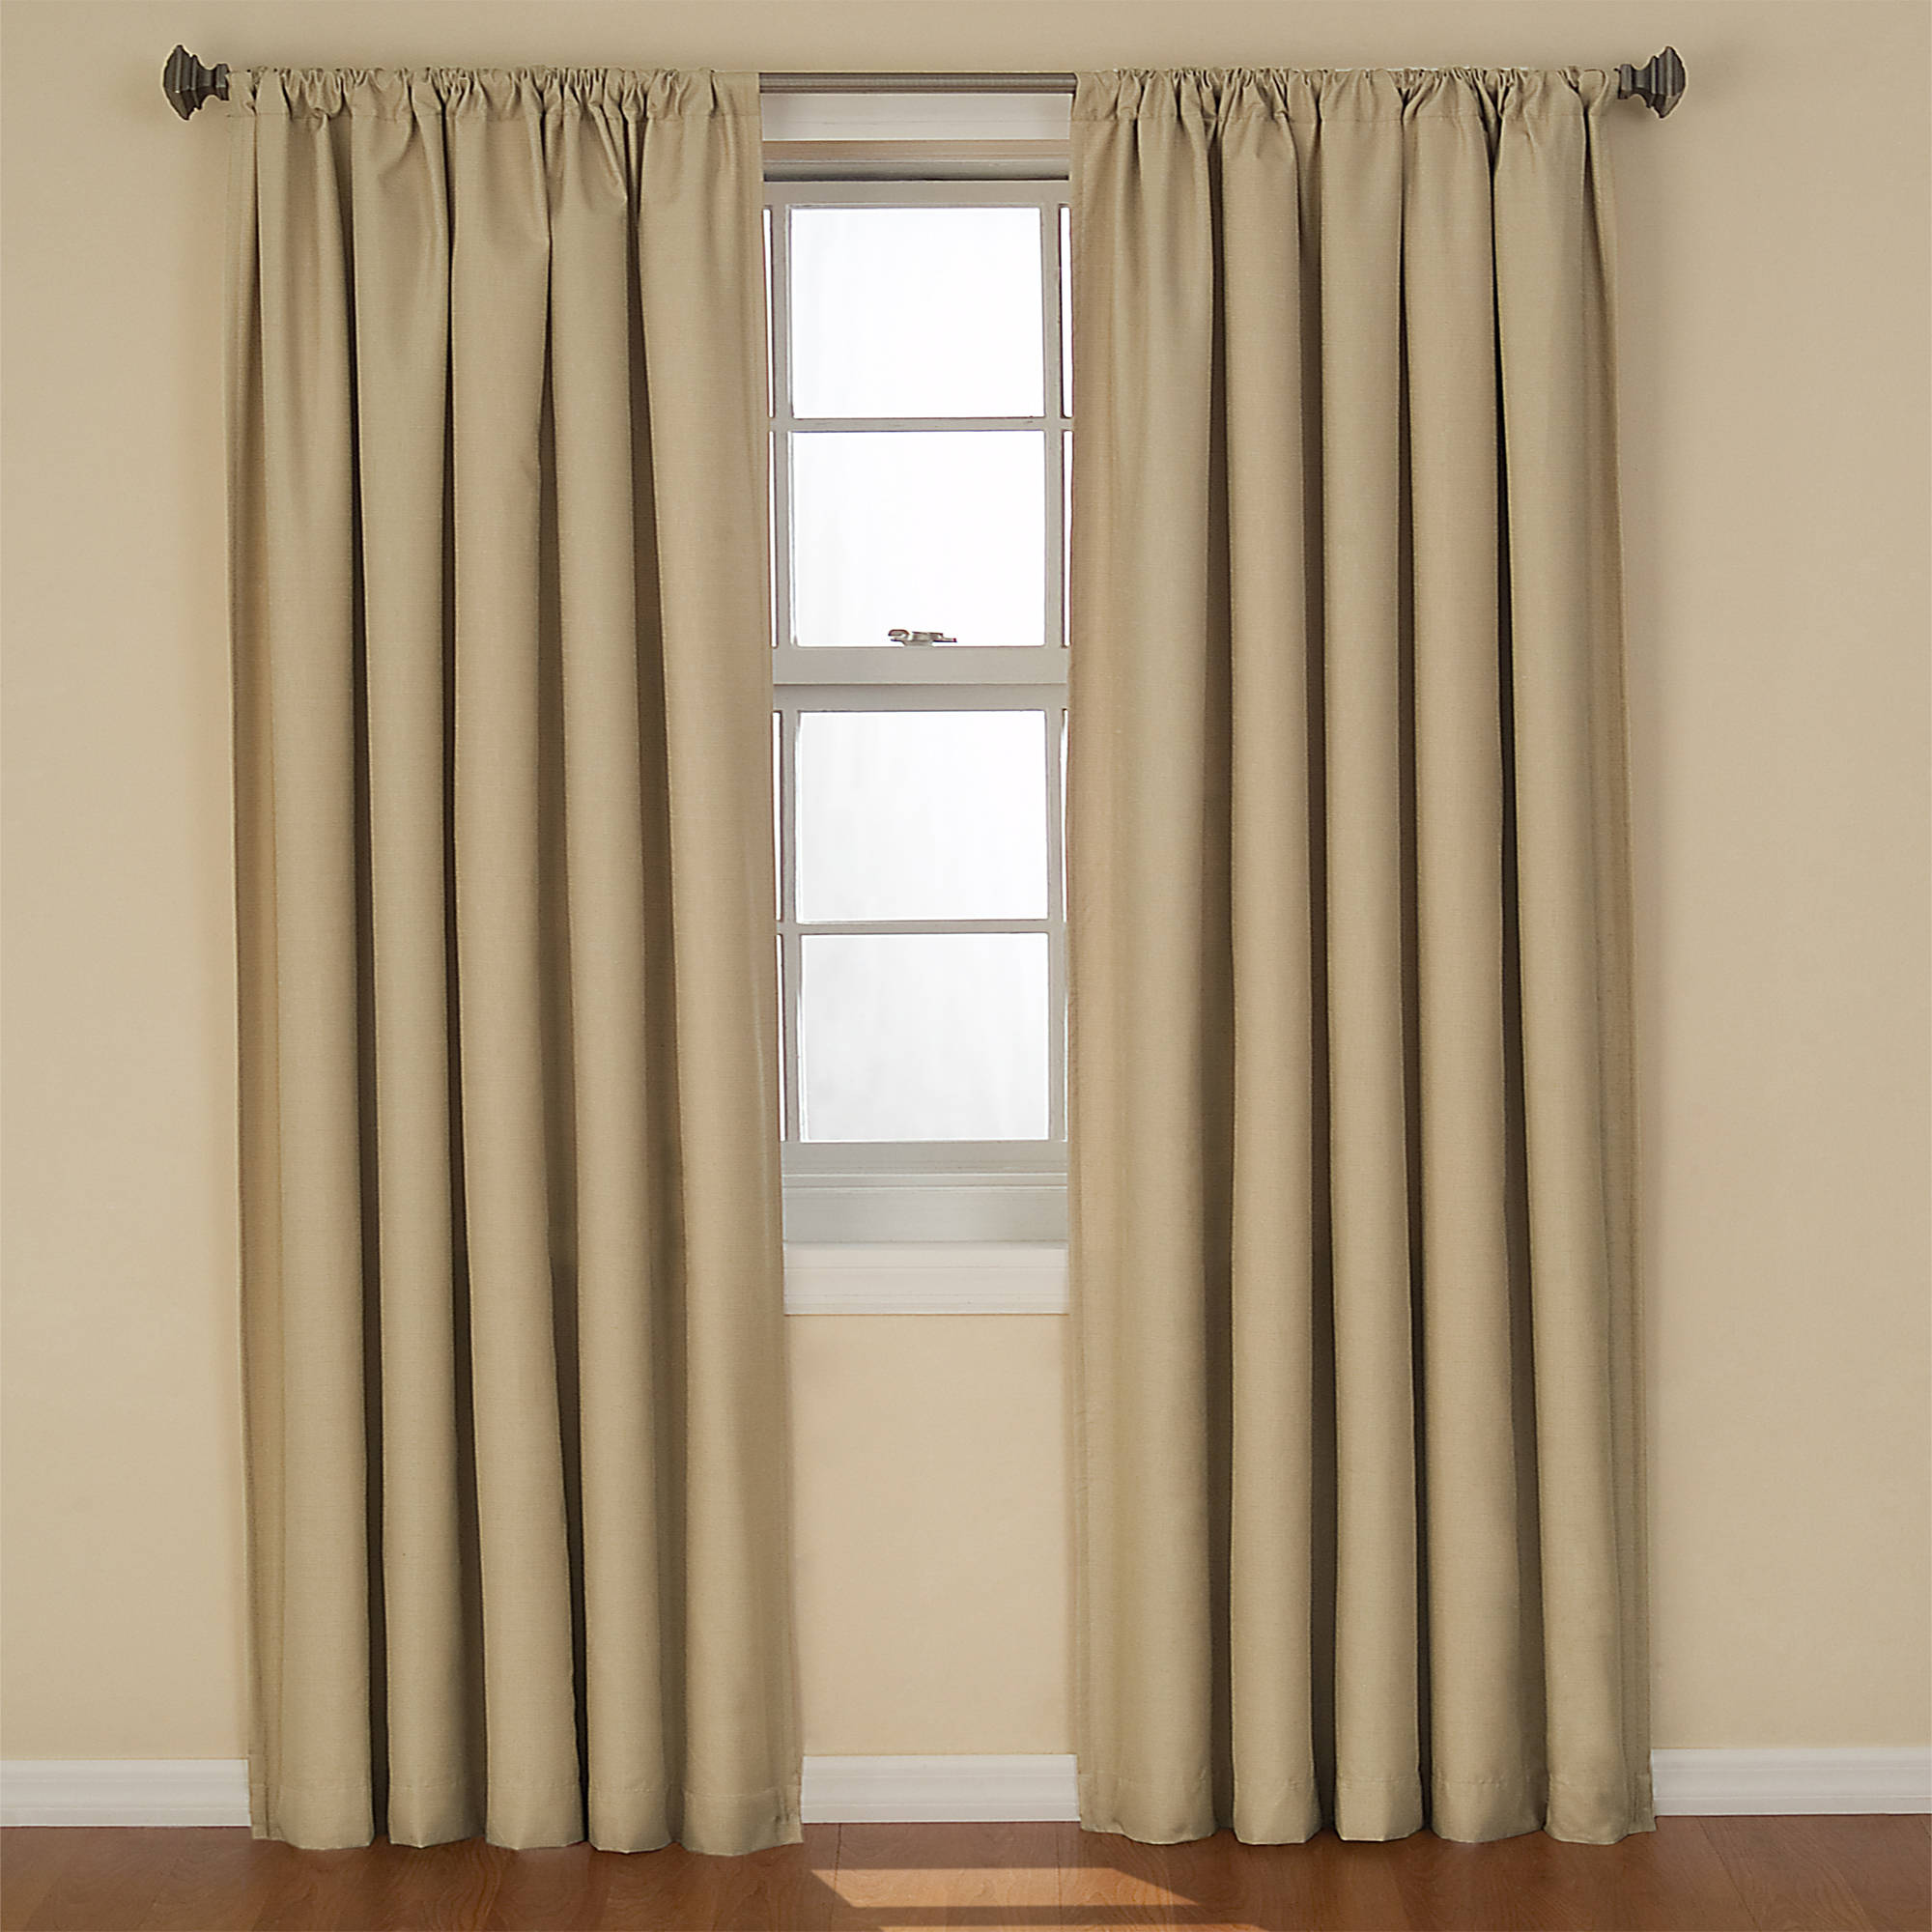 Perfect Interior Decorating Ideas with Thermal Insulated Curtains: Thermal Insulated Curtains | Cheap Thermal Curtains | Solid Thermal Insulated Blackout Curtain